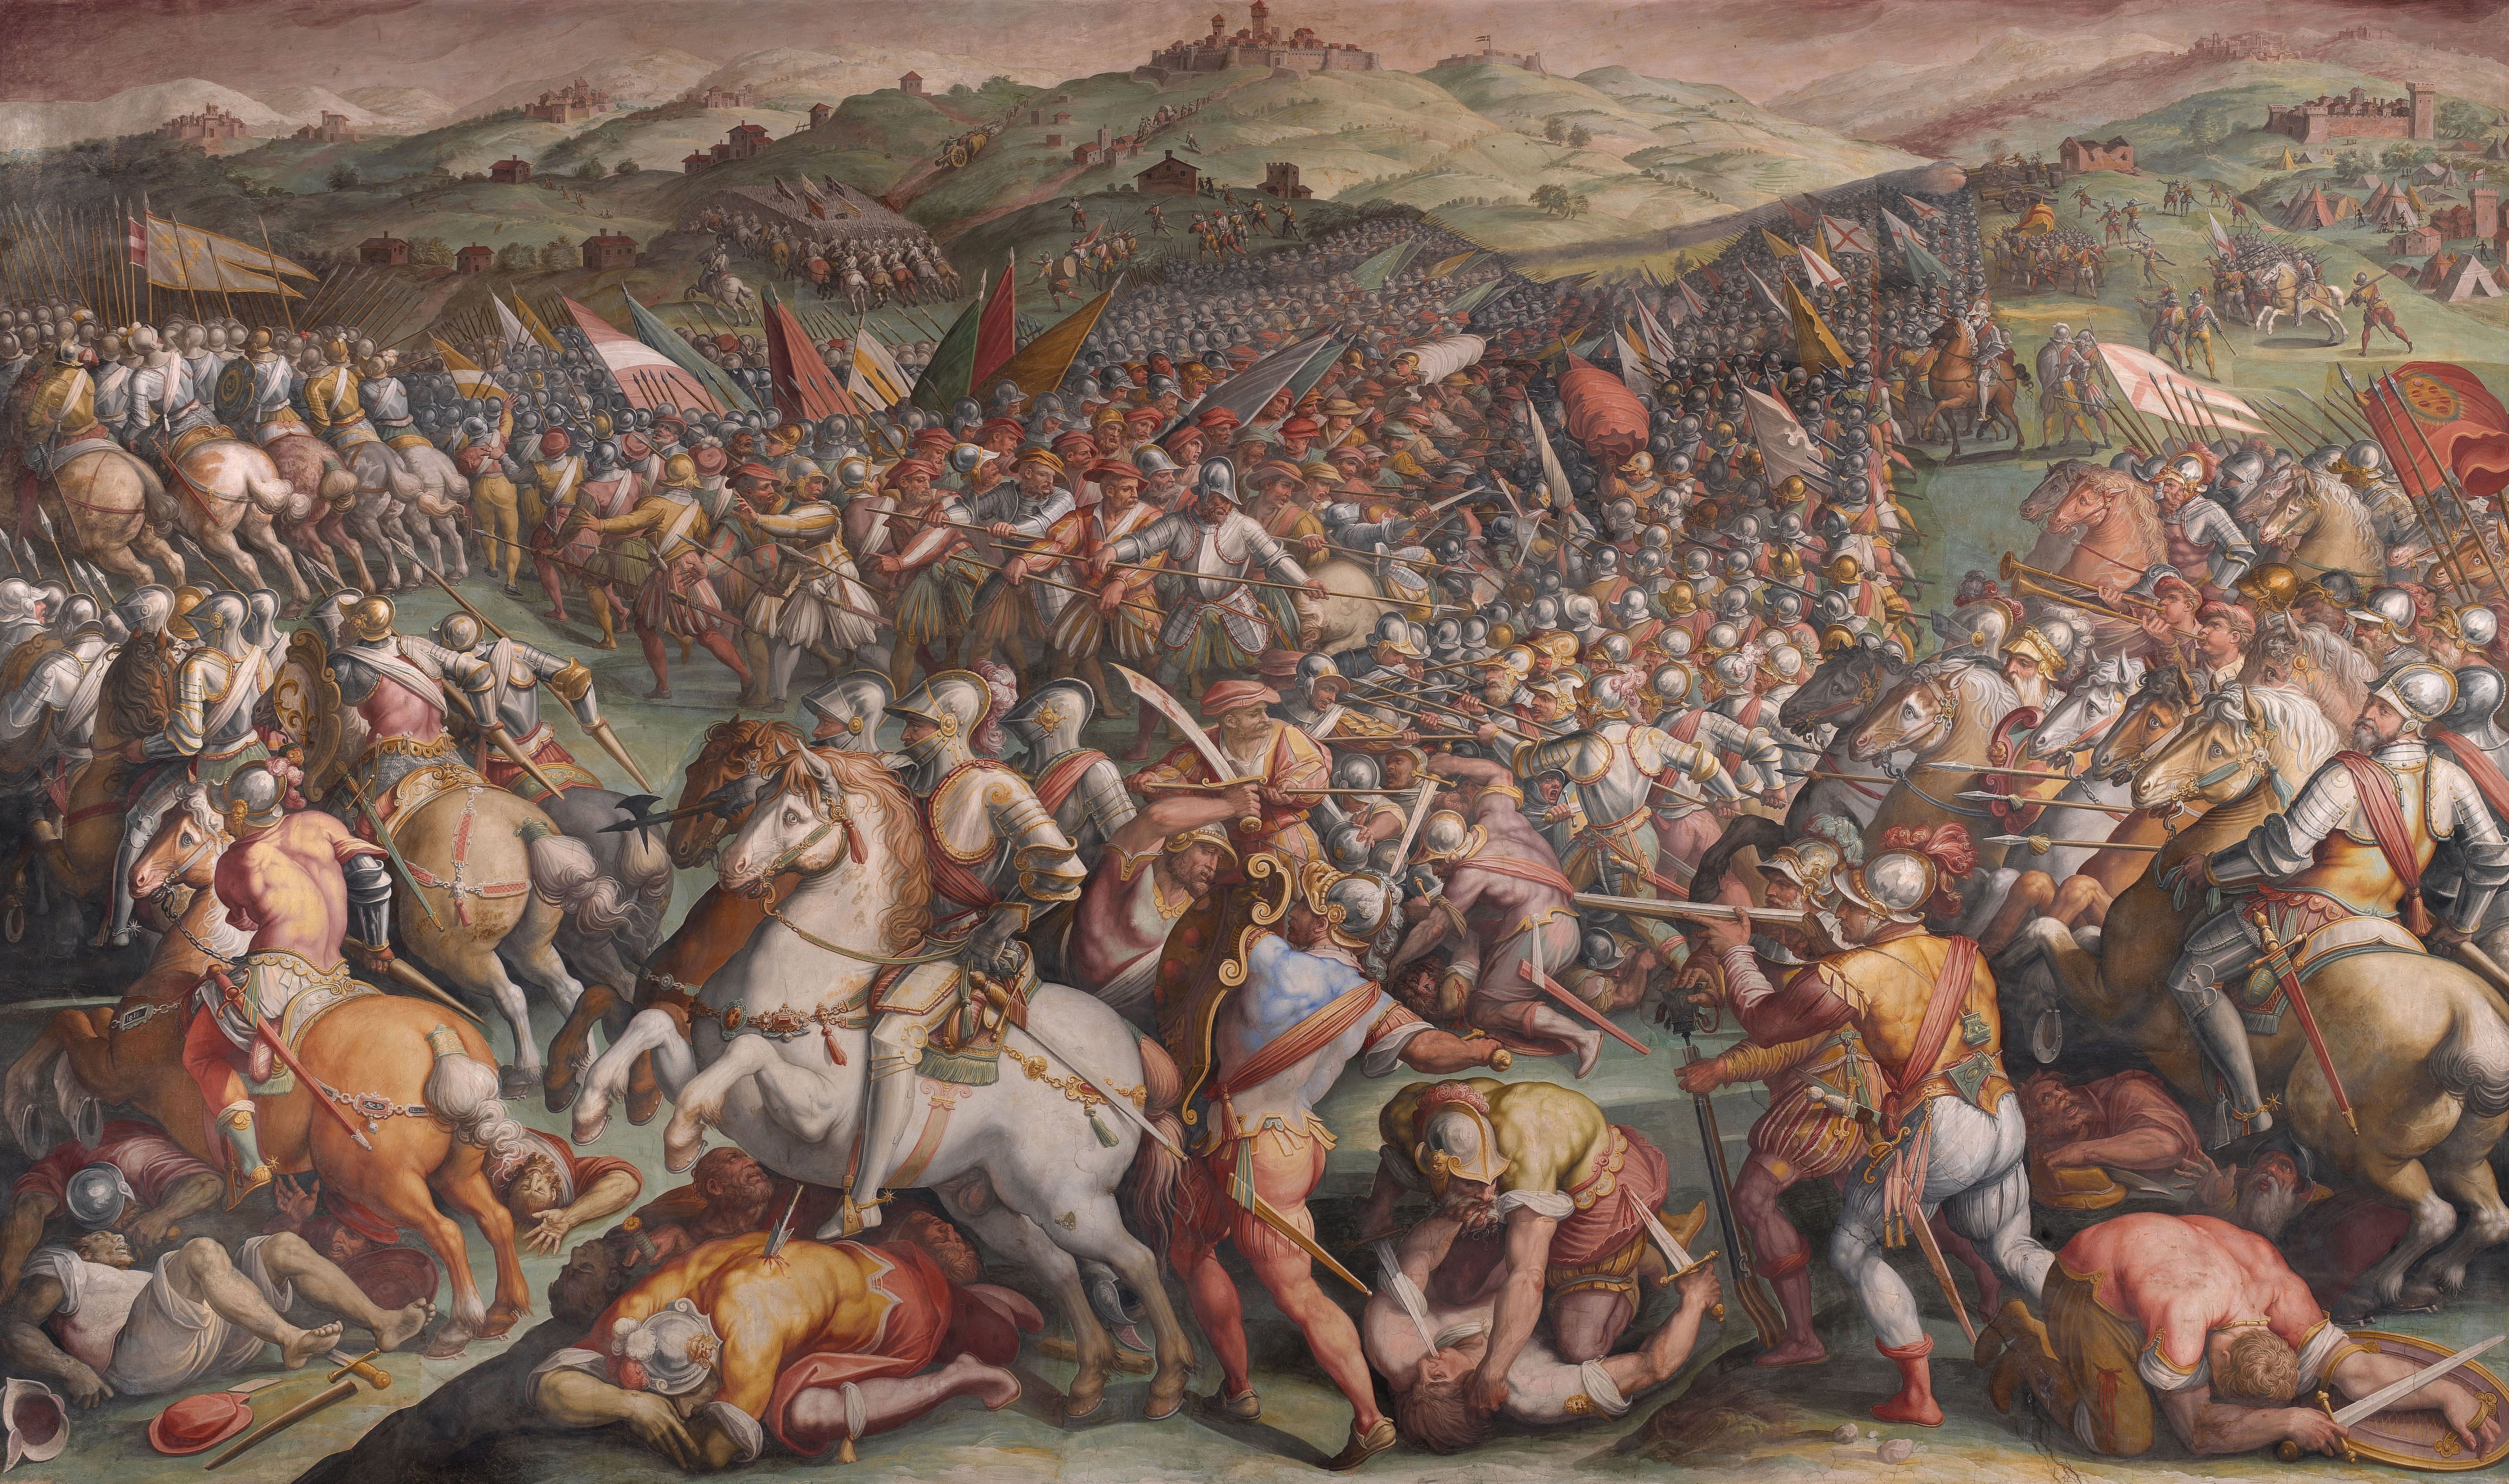 The Battle of Marciano in Val di Chiana, 1570-1571. Found in the collection of the Palazzo Vecchio, Florence.